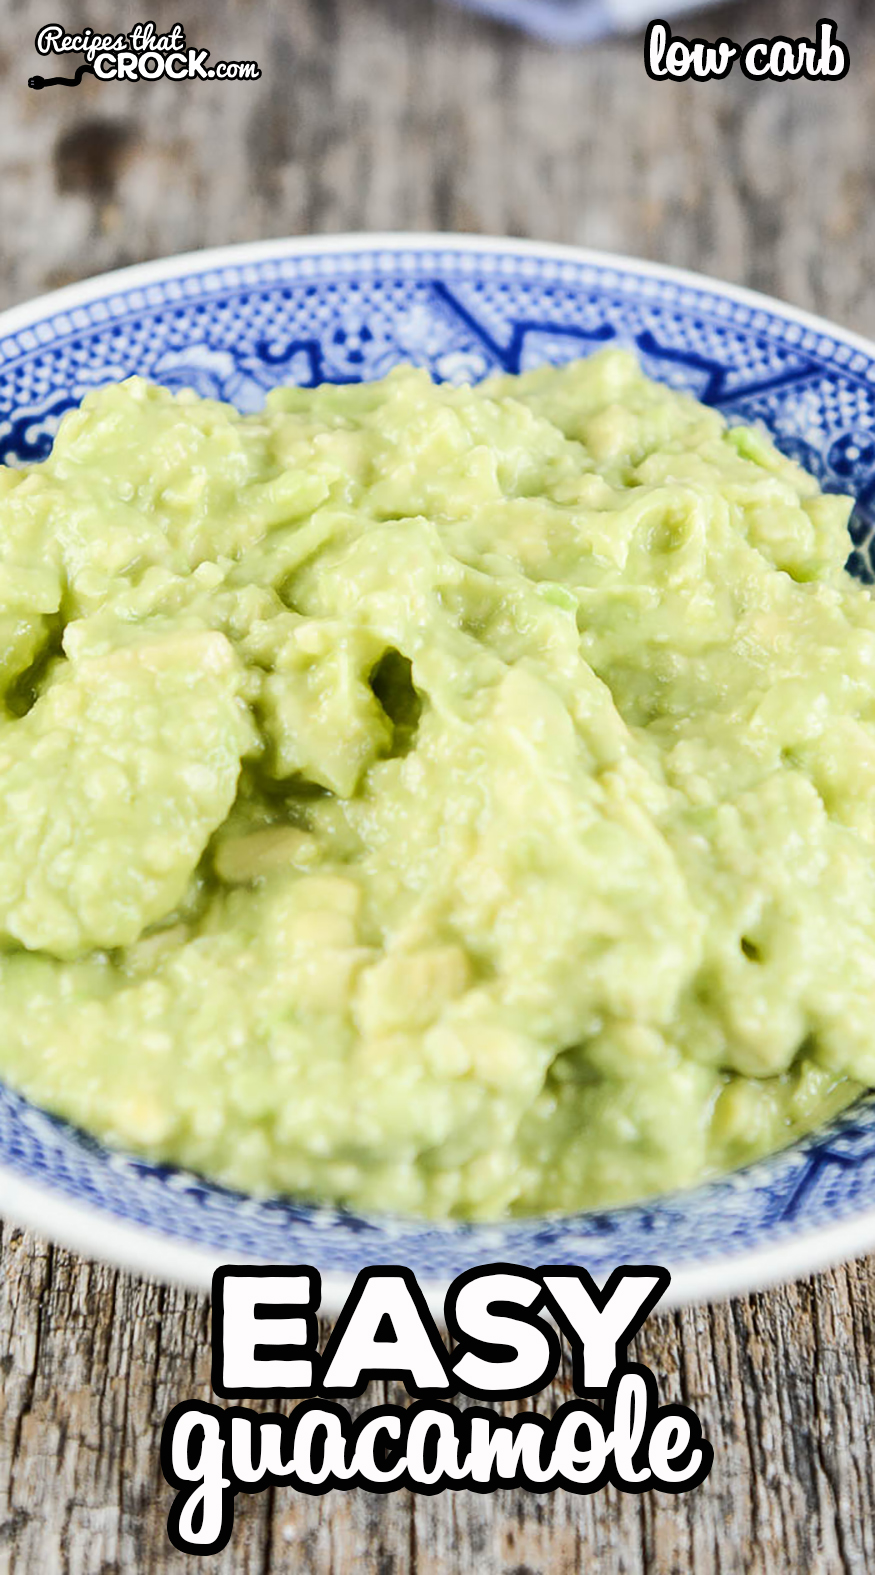 Are you looking for a simple way to make guacamole? This easy guacamole recipe is my go-to low carb recipe any time I am craving guac! It is so delicious and scale-able to feed a crowd if needed. via @recipescrock